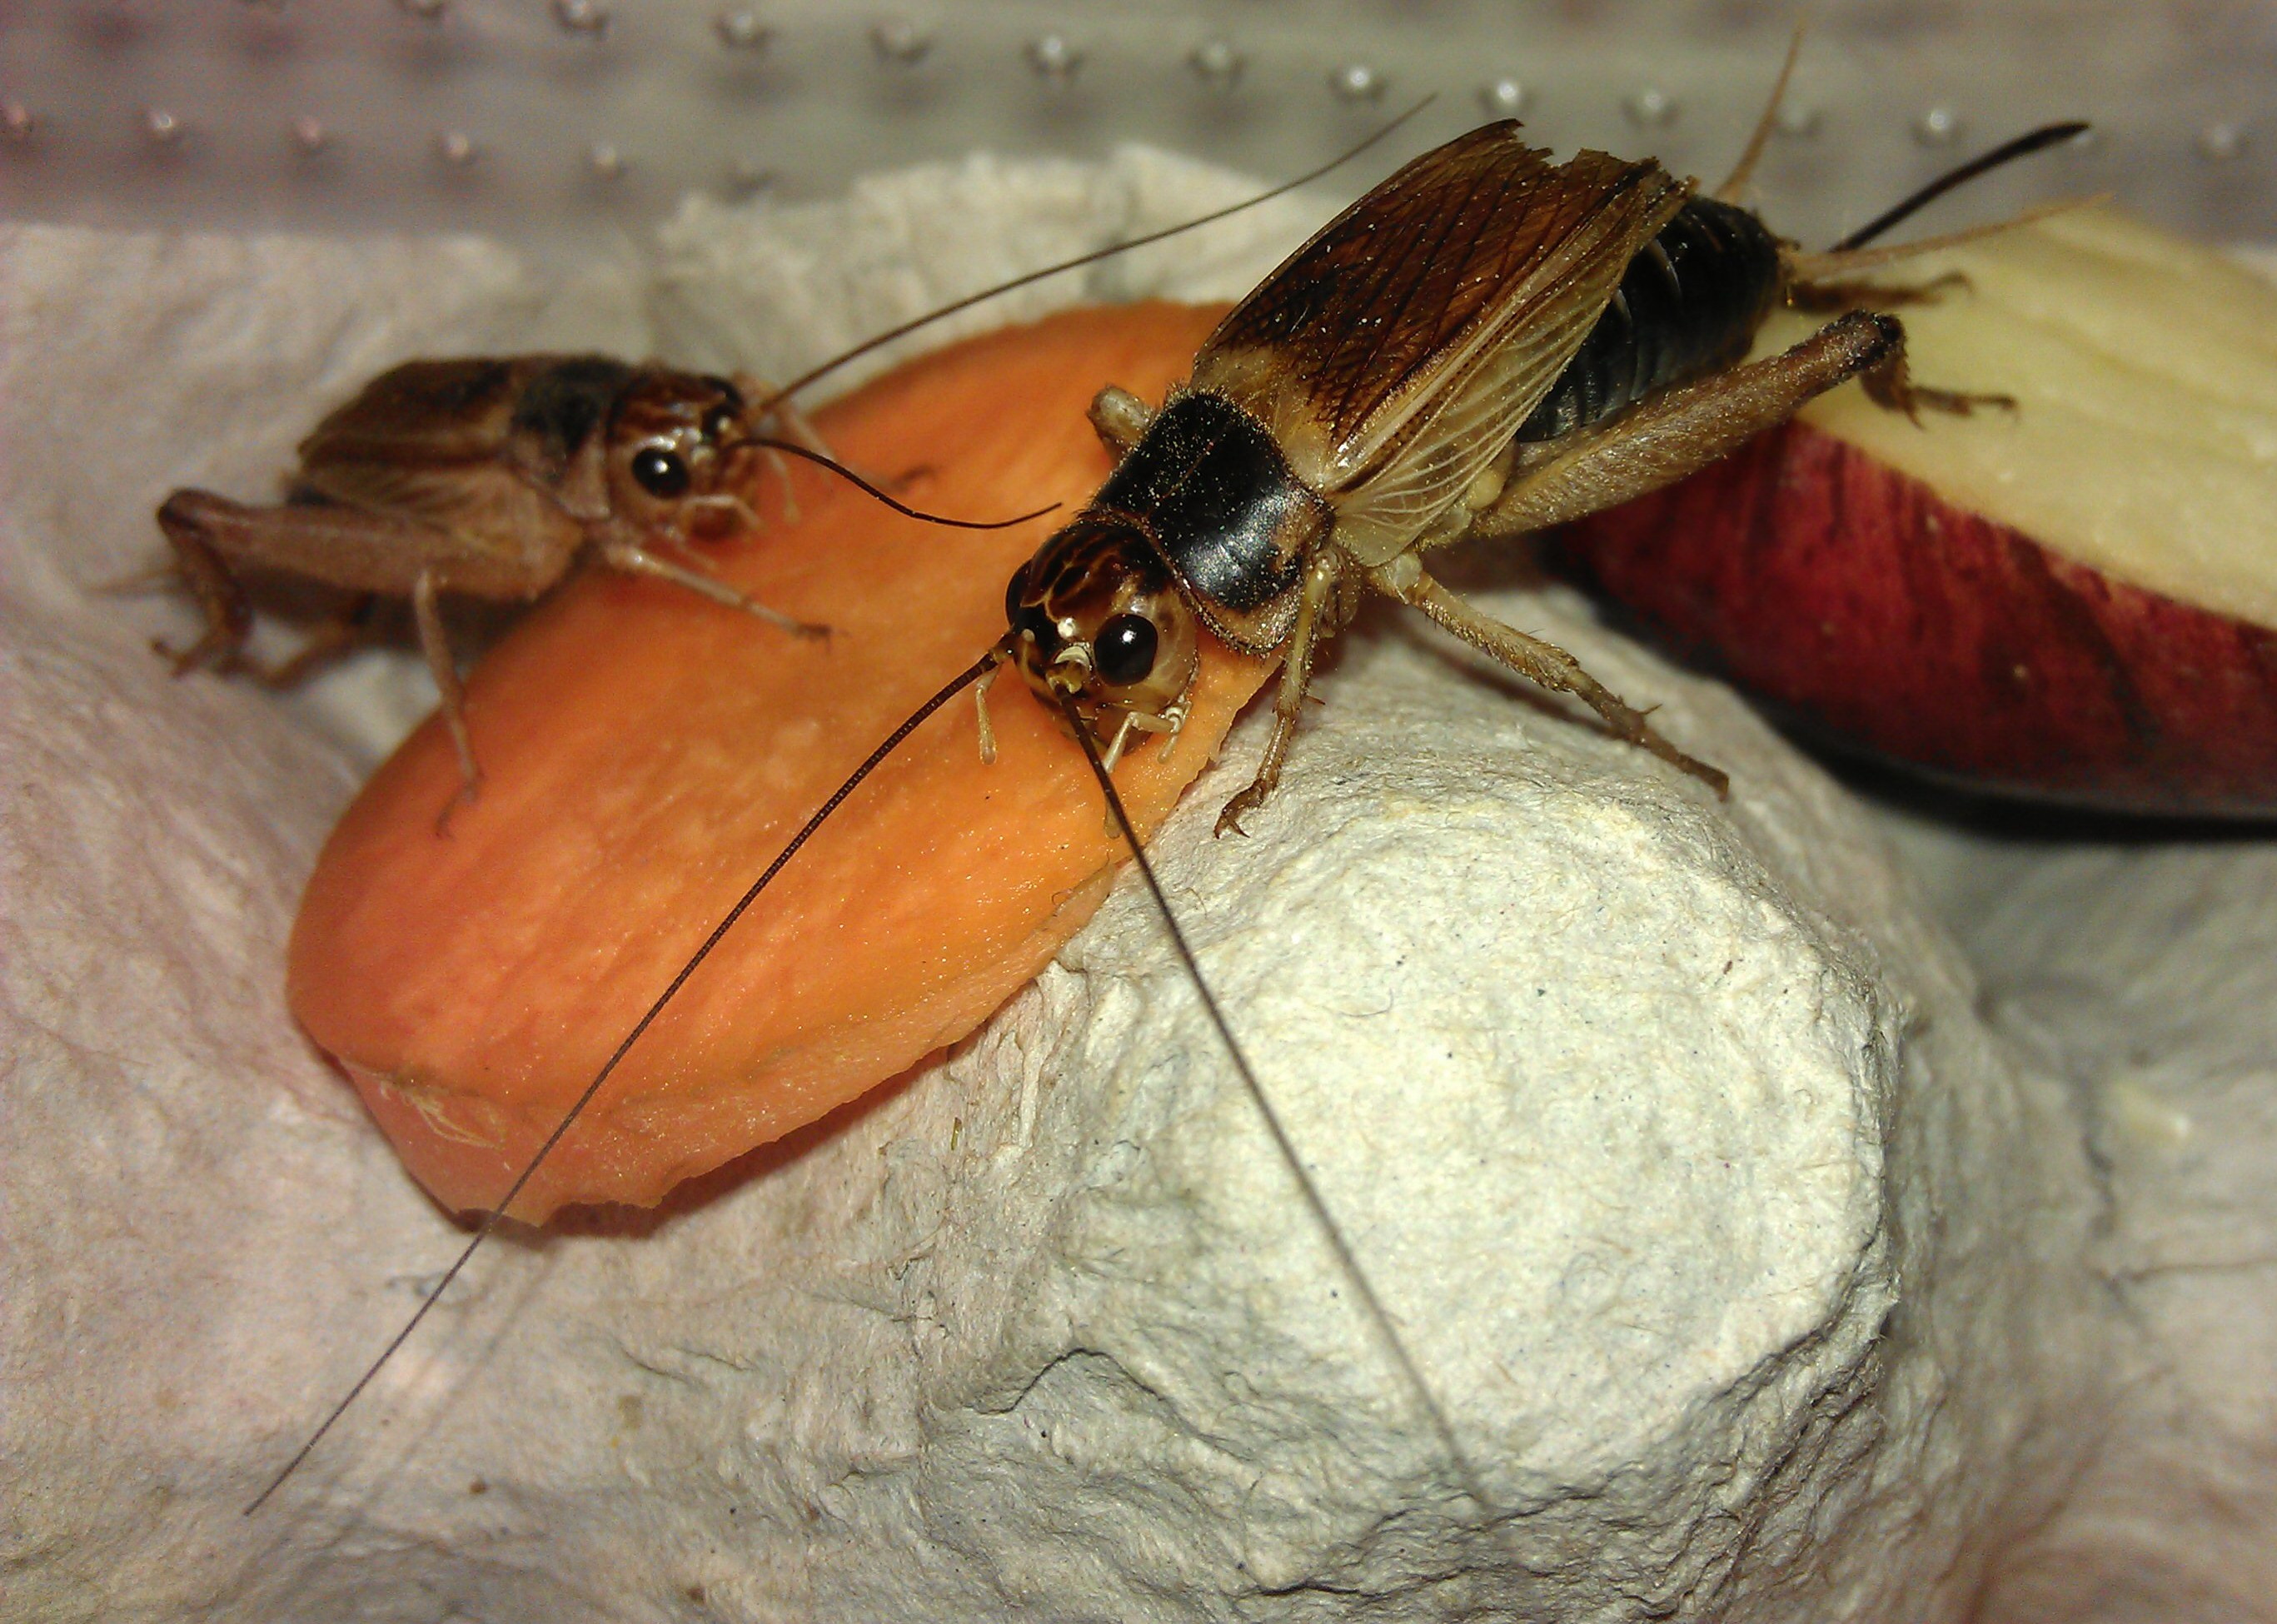 Crickets eating a Carrot